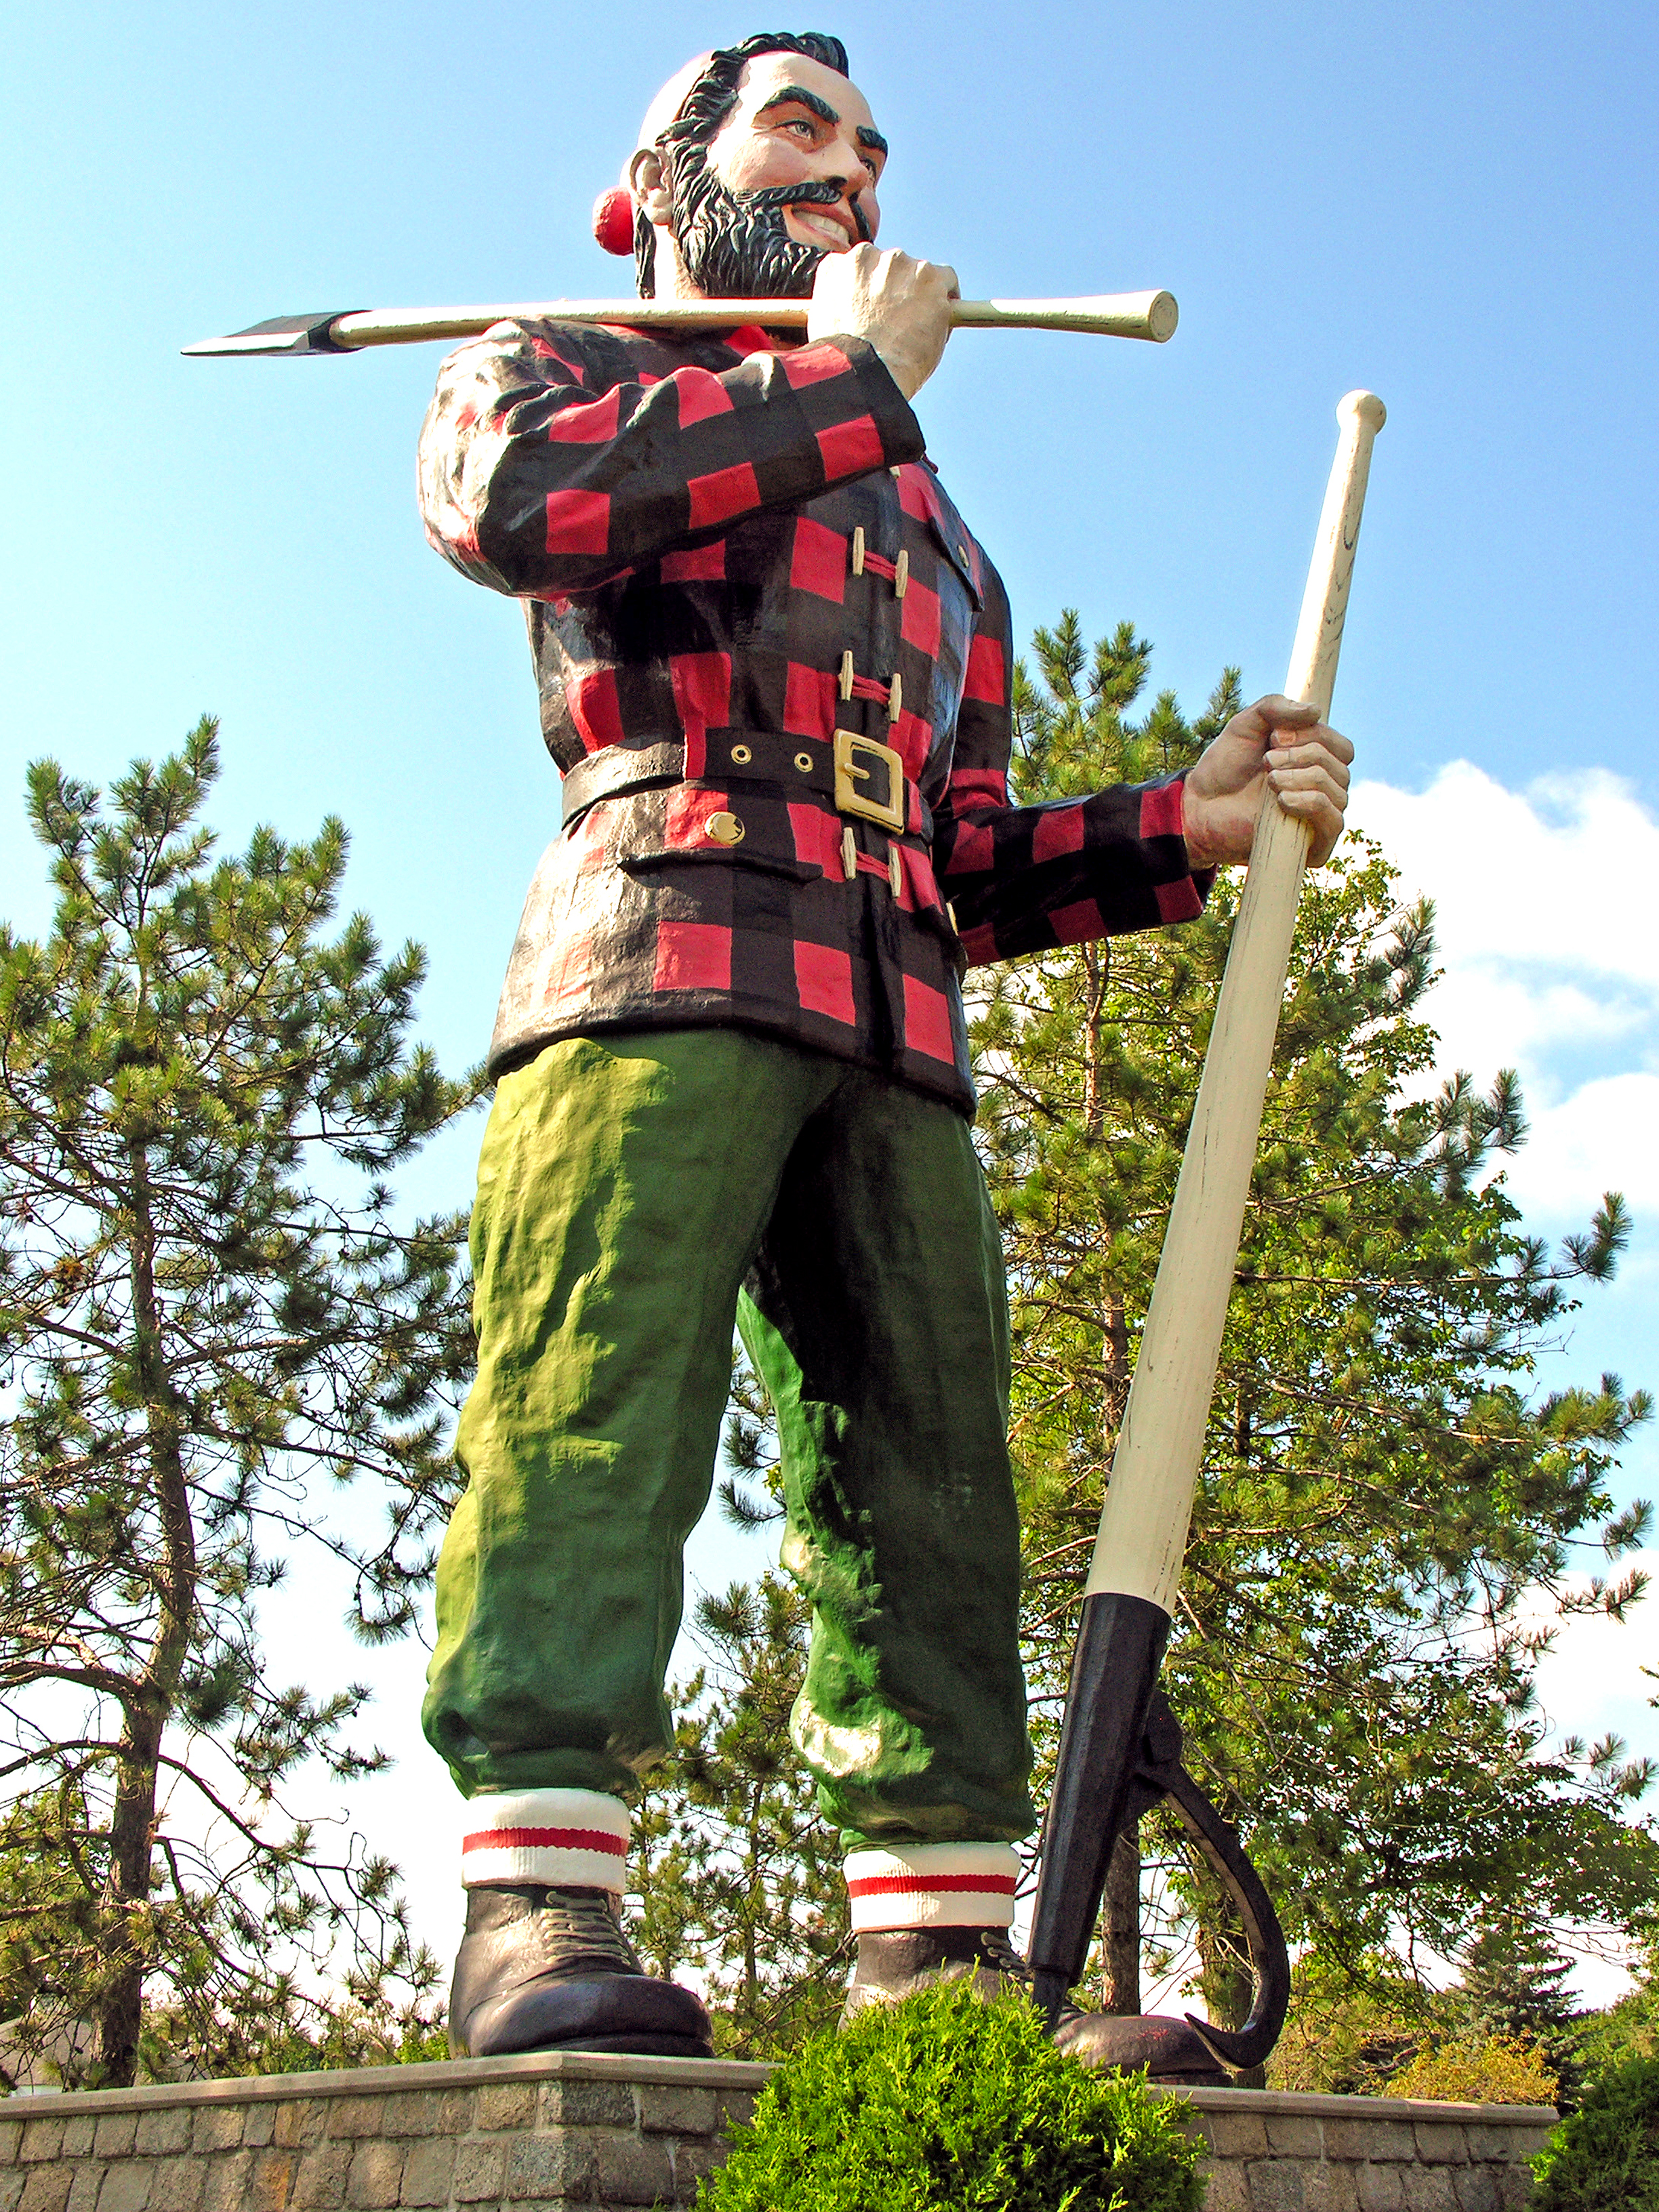 "From  RoadsideAmerica.com : Bangor's Paul Bunyan, ""Reputed to be the largest statue of Paul Bunyan in the world,"" according to its sign, stands on a stone pedestal in front of the Bangor Civic Center in Bass Park. The statue is 31 feet high and weighs 3,700 pounds, not including its double-sided ax and peavey. Paul Bunyan's fiberglass-over-metal frame is hurricane-proofed to withstand 110 mph winds.  Photo by Dennis Jarvis [CC BY-SA 2.0 via Wikimedia Commons"